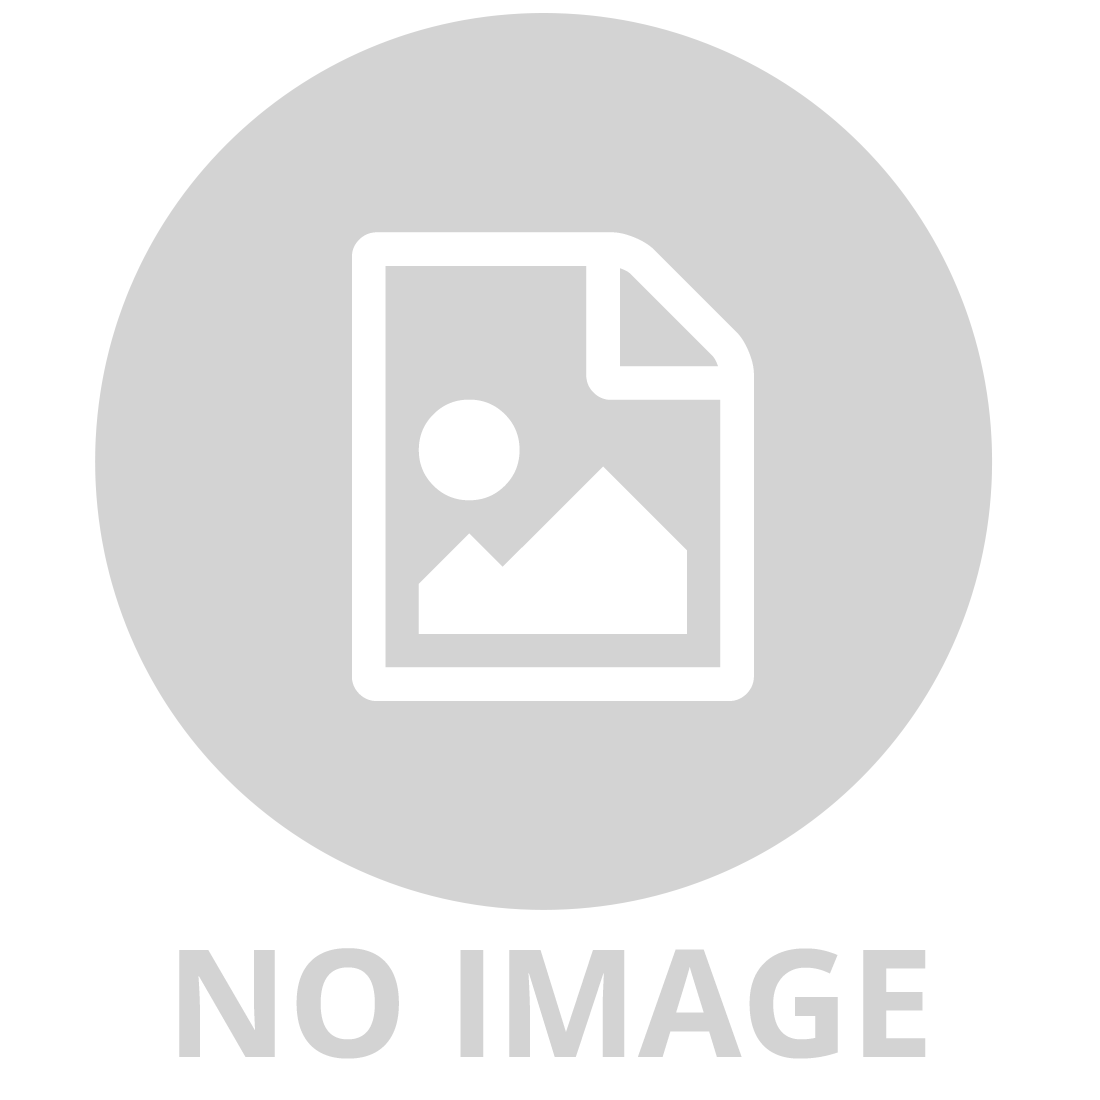 Pixie Smart Plug ESS105/BT with USB